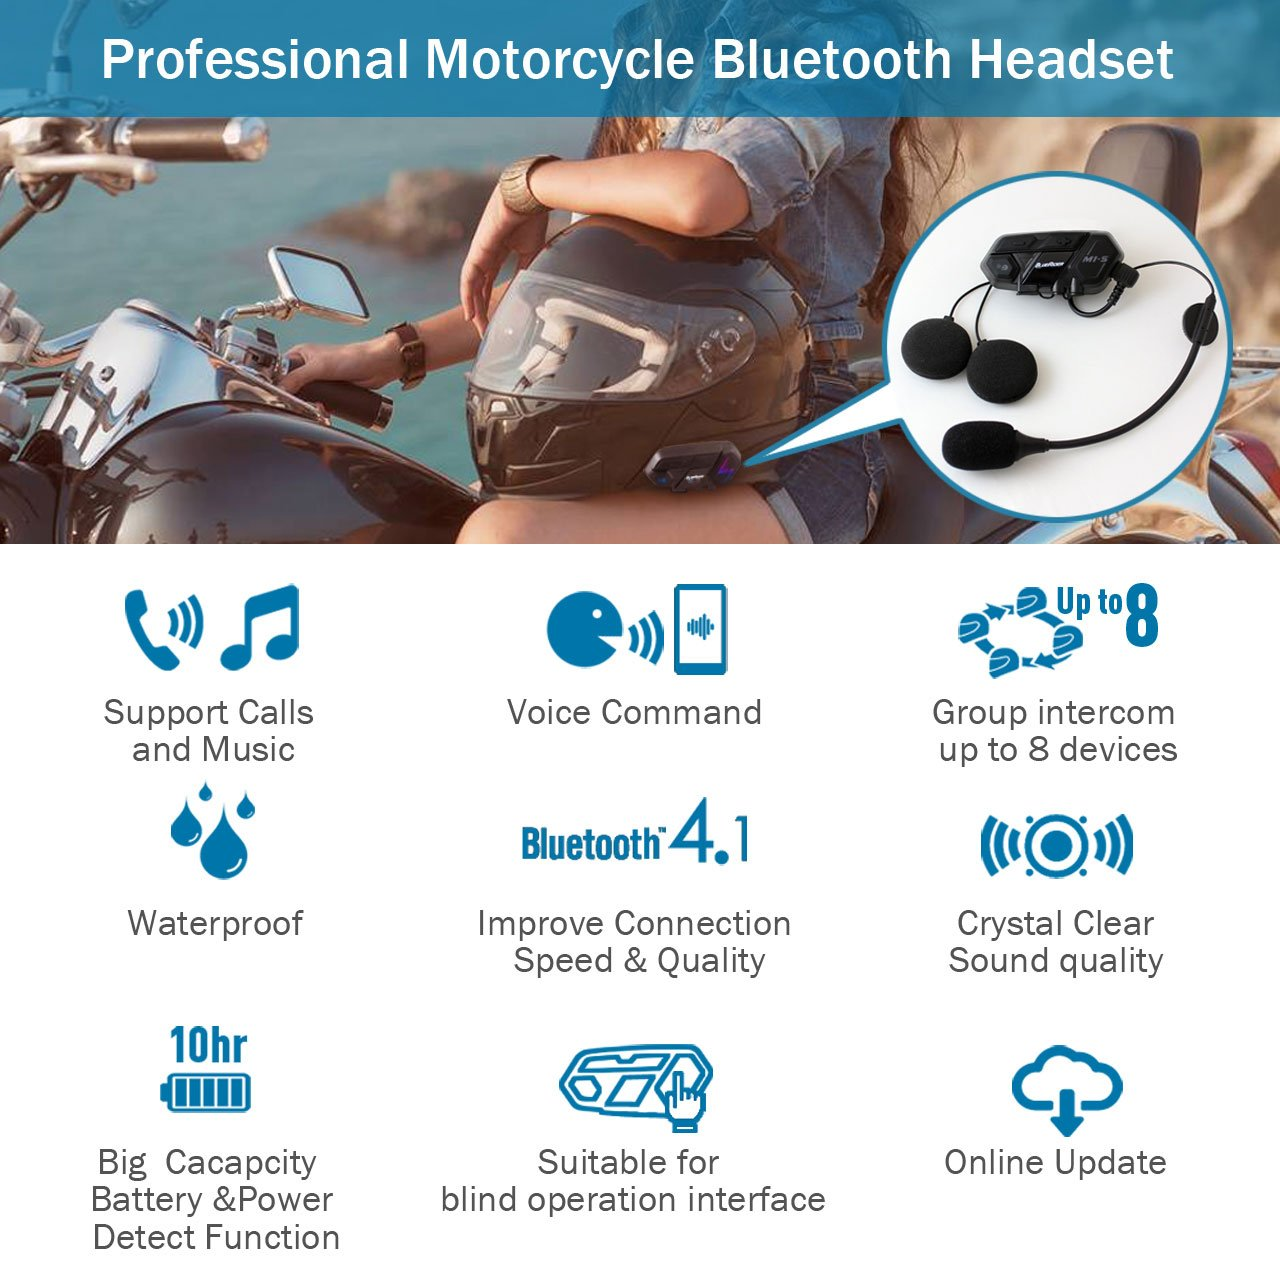 Motorcycle Bluetooth 4.1 Helmet Headset and Intercom Communication Systems Kit, Supports 8 riders group intercom, Handsfree Calls Voice Command 12hrs with Speakers headphones for Motorbike Skiing by BIBENE (Image #2)